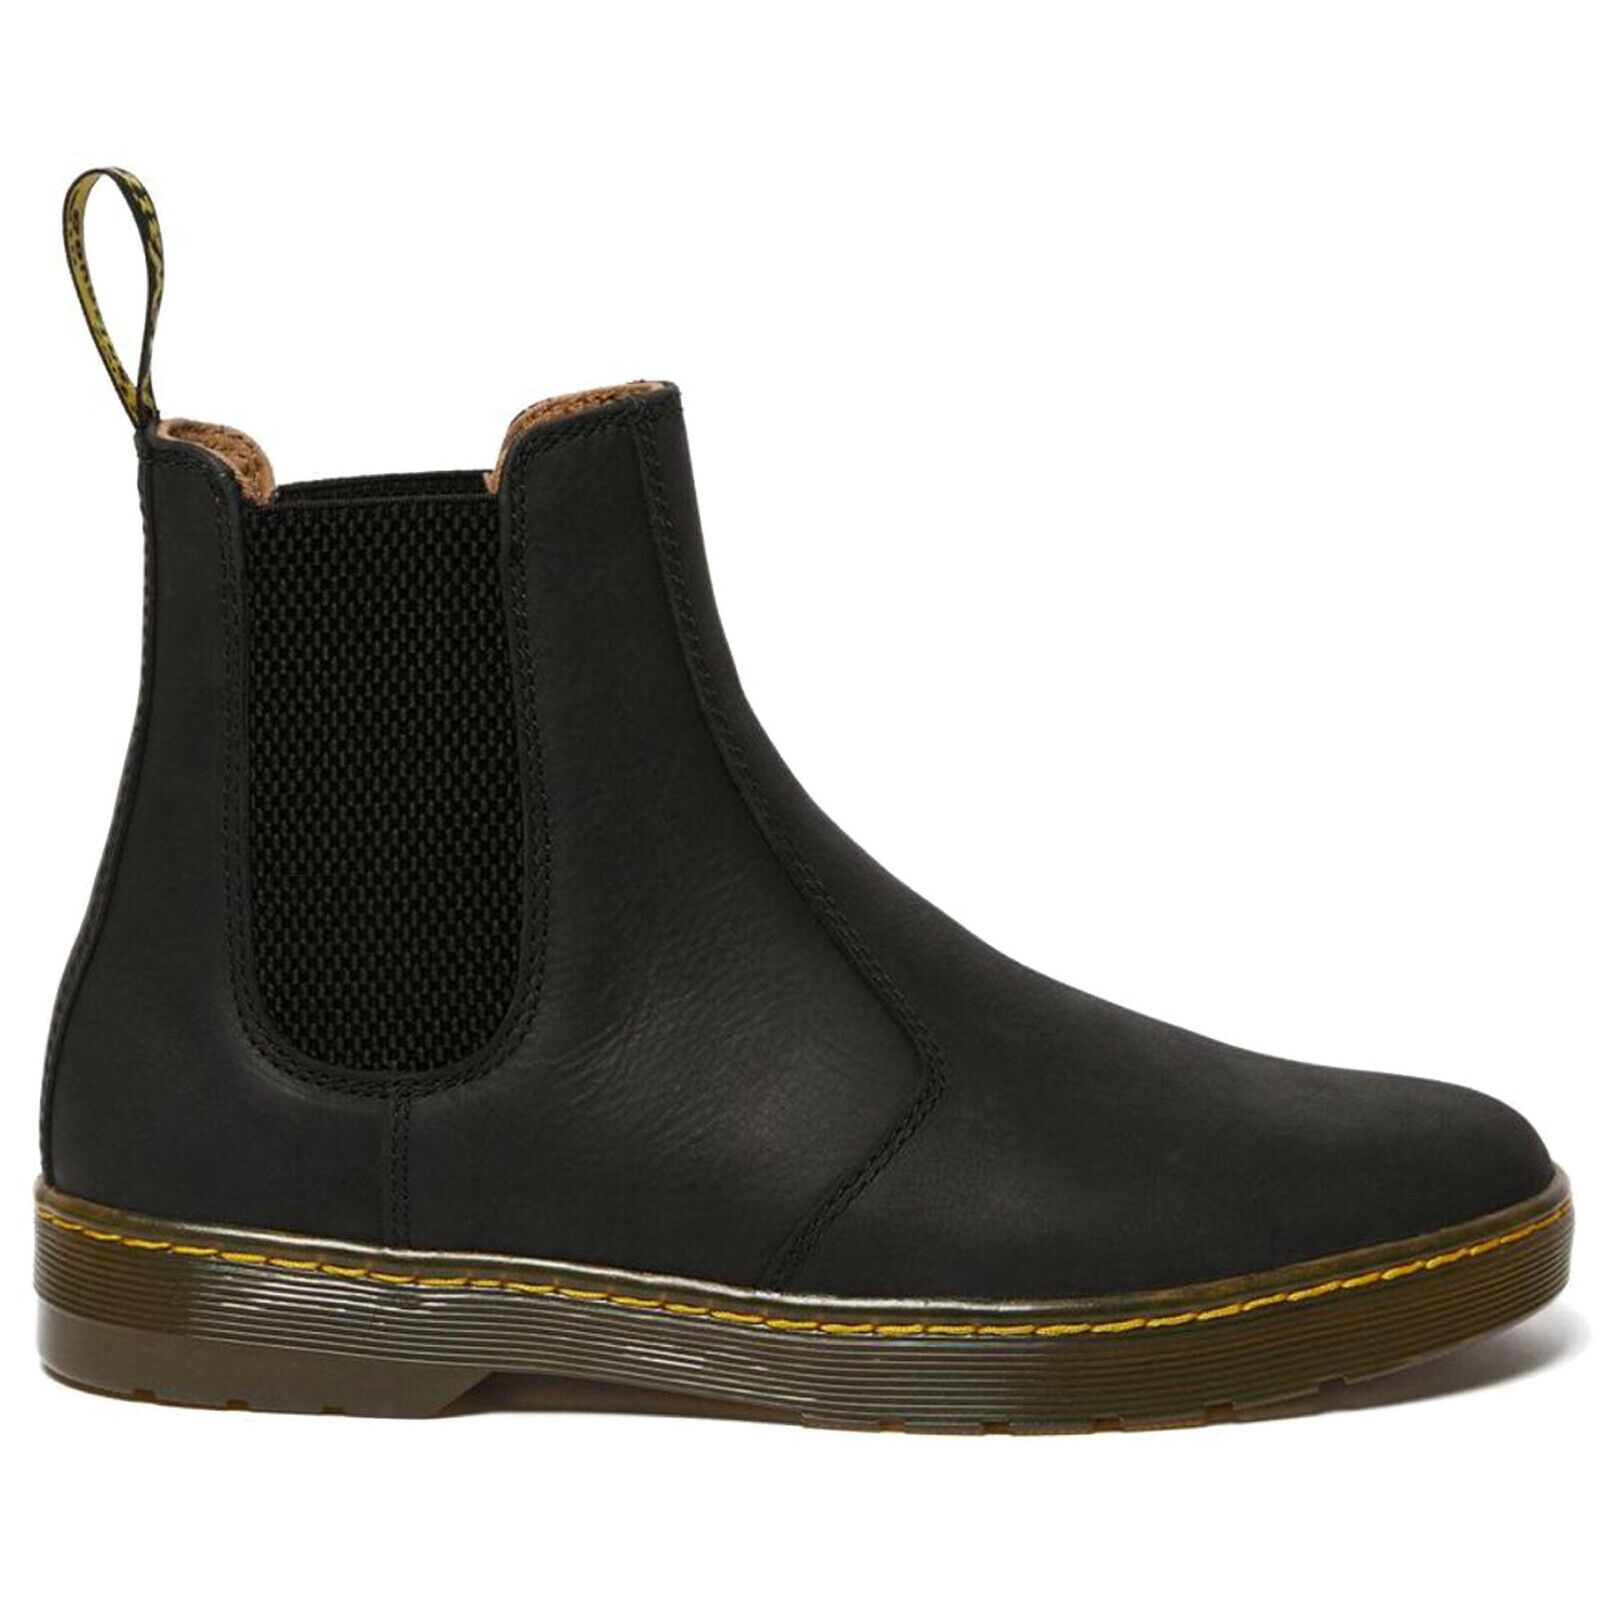 Dr. Martens Mens Boots Harrema Casual Pull-On Chelsea Ankle Leather Textile